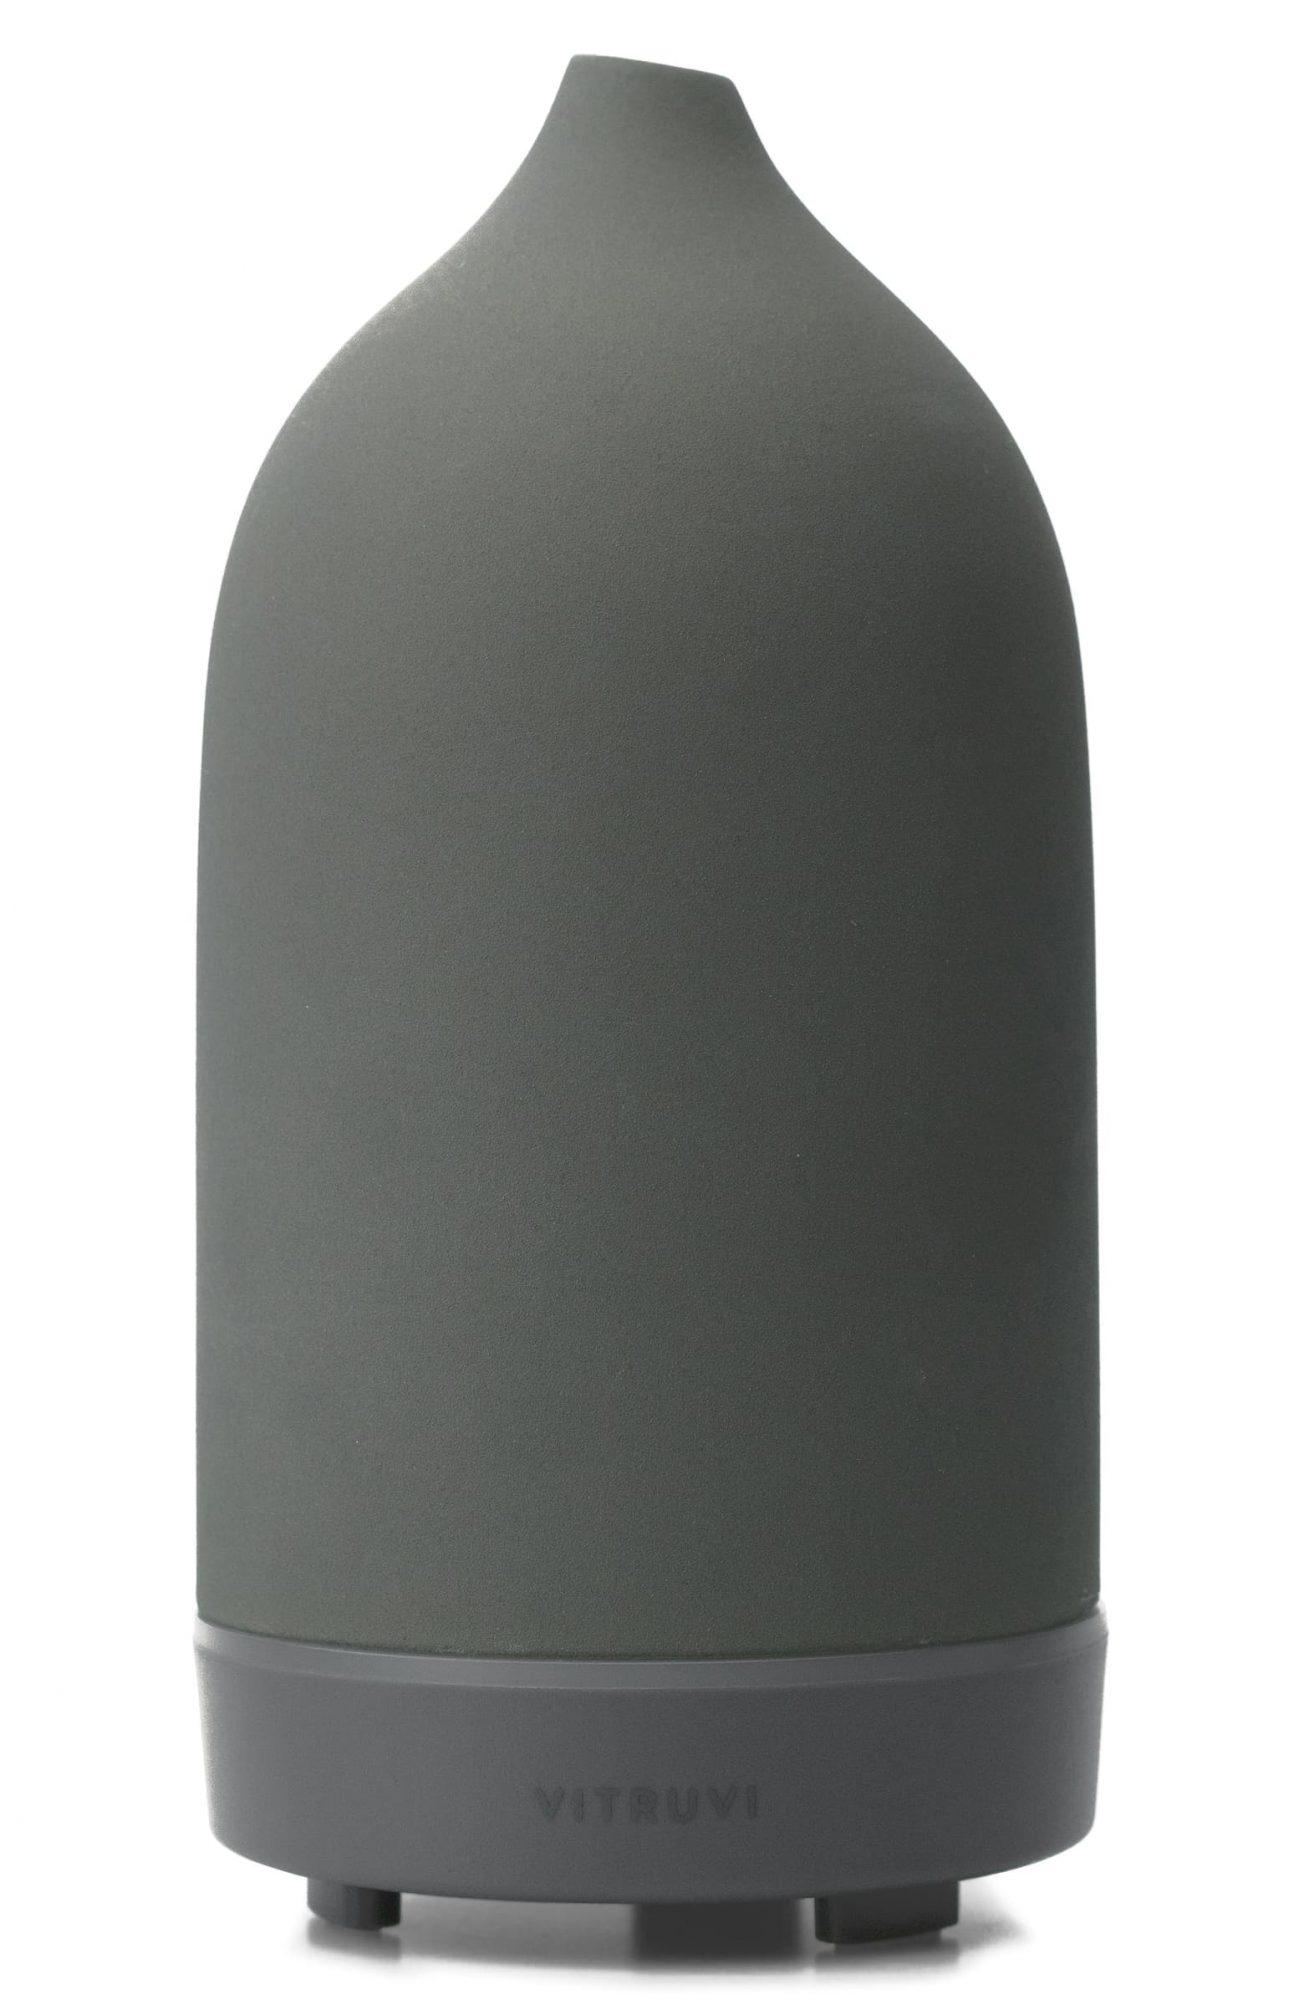 Gift Ideas for Girlfriend at Nordstrom: Vitruvi Porcelain Essential Oil Diffuser